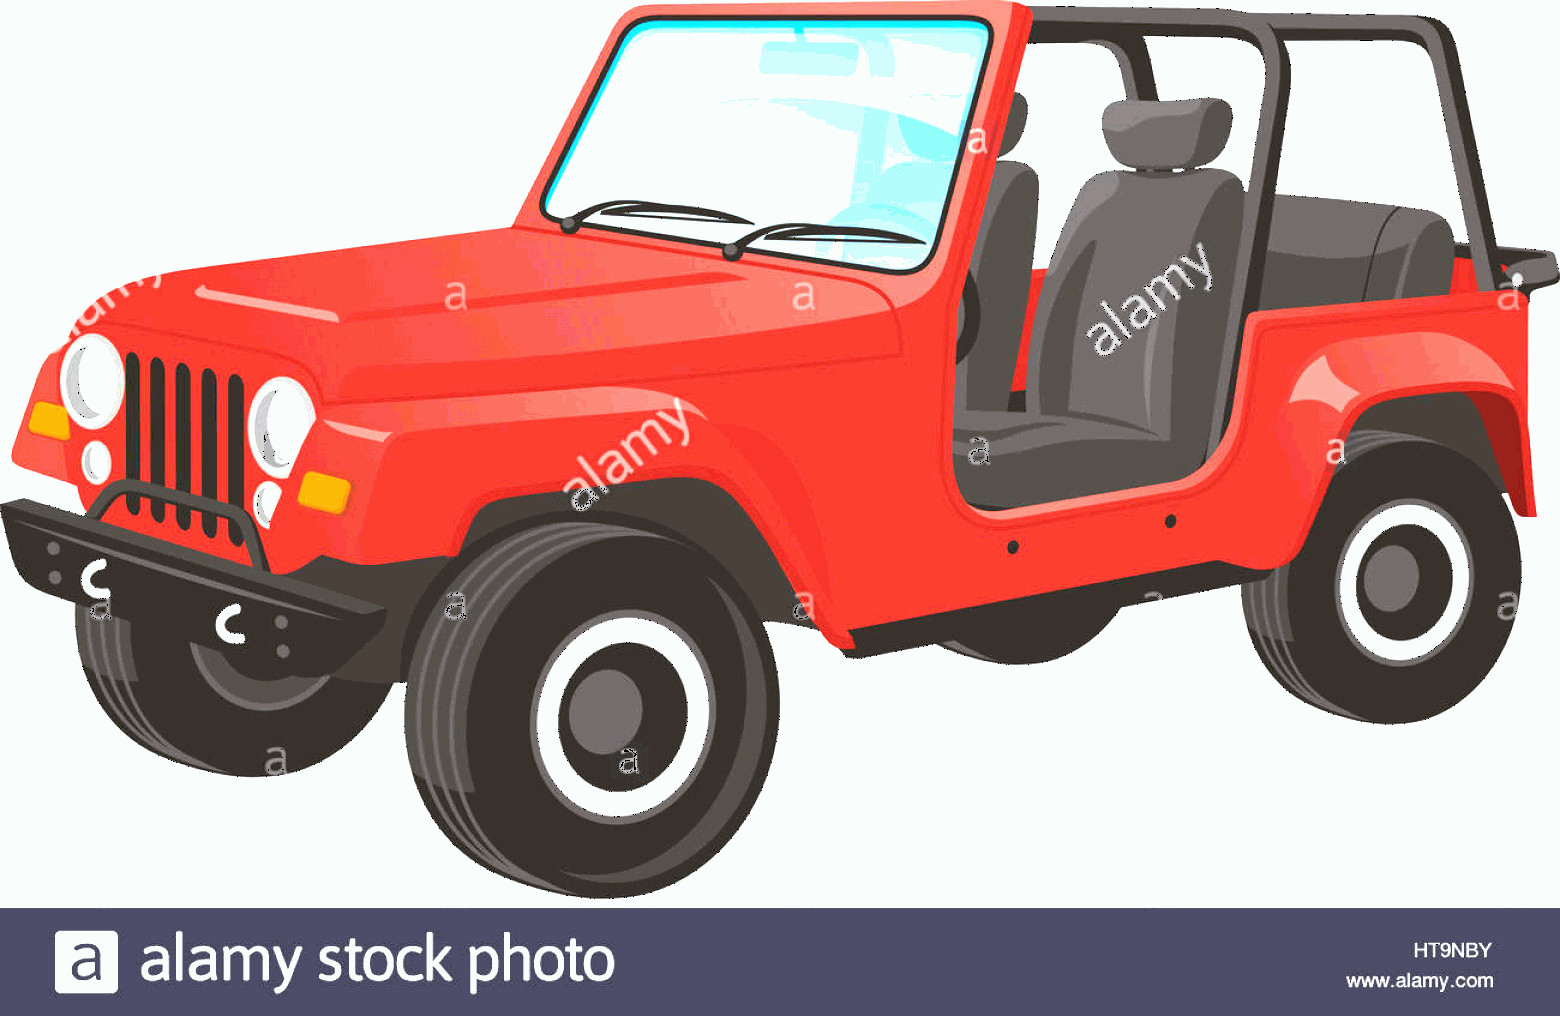 Vector Jeep JK: Stock Photo Vector Illustration Of A Jeep Wrangler Saved In Layers For Easy Editing